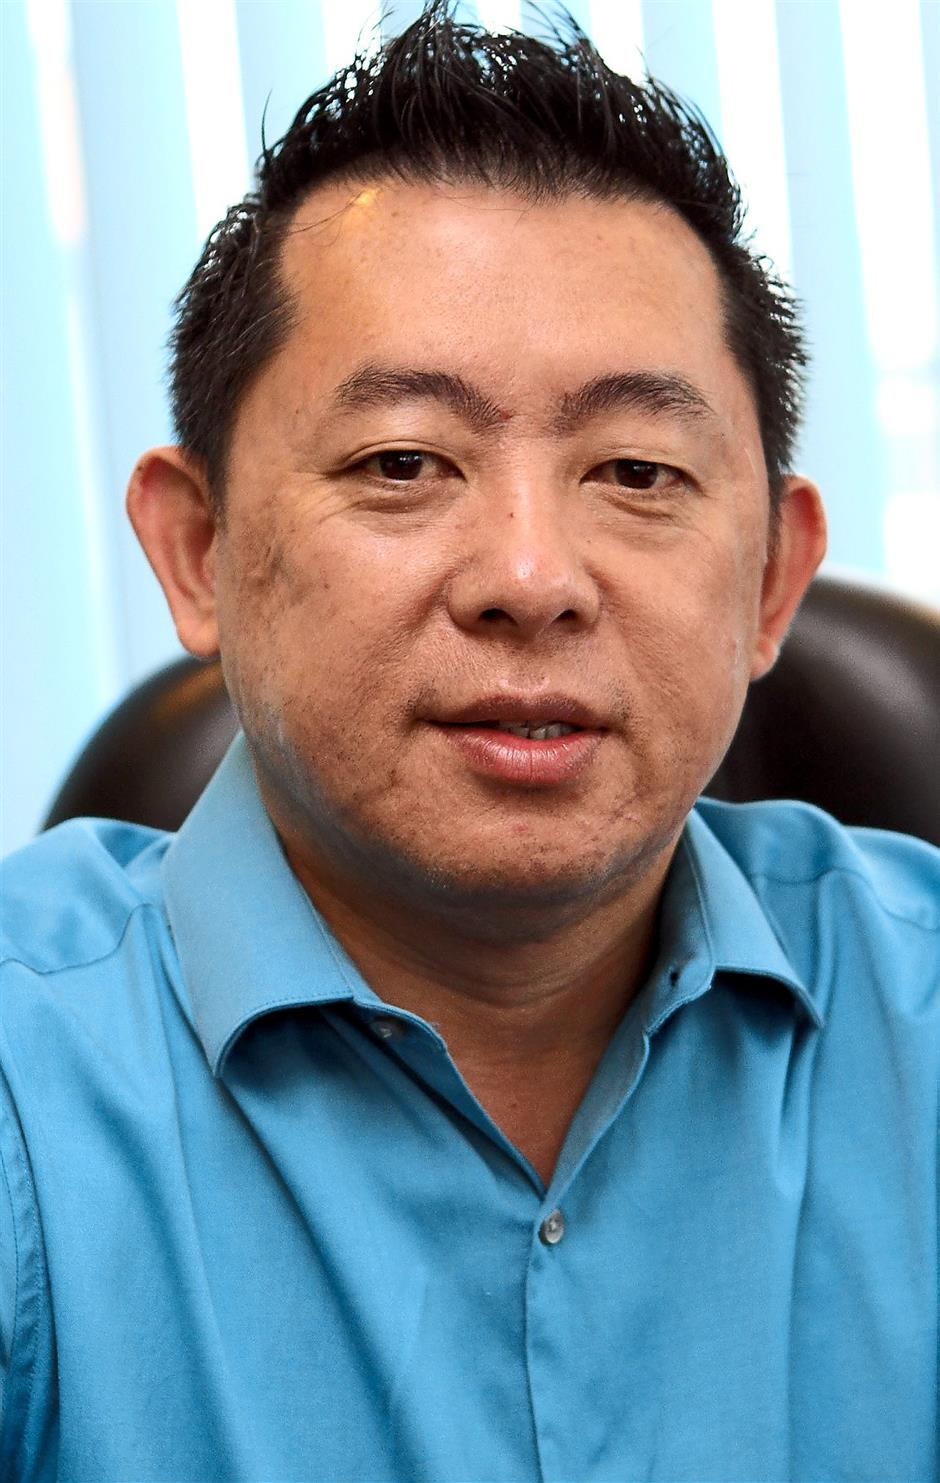 Hon: SEC reacted to the drop in demand by offering attractive promotions.